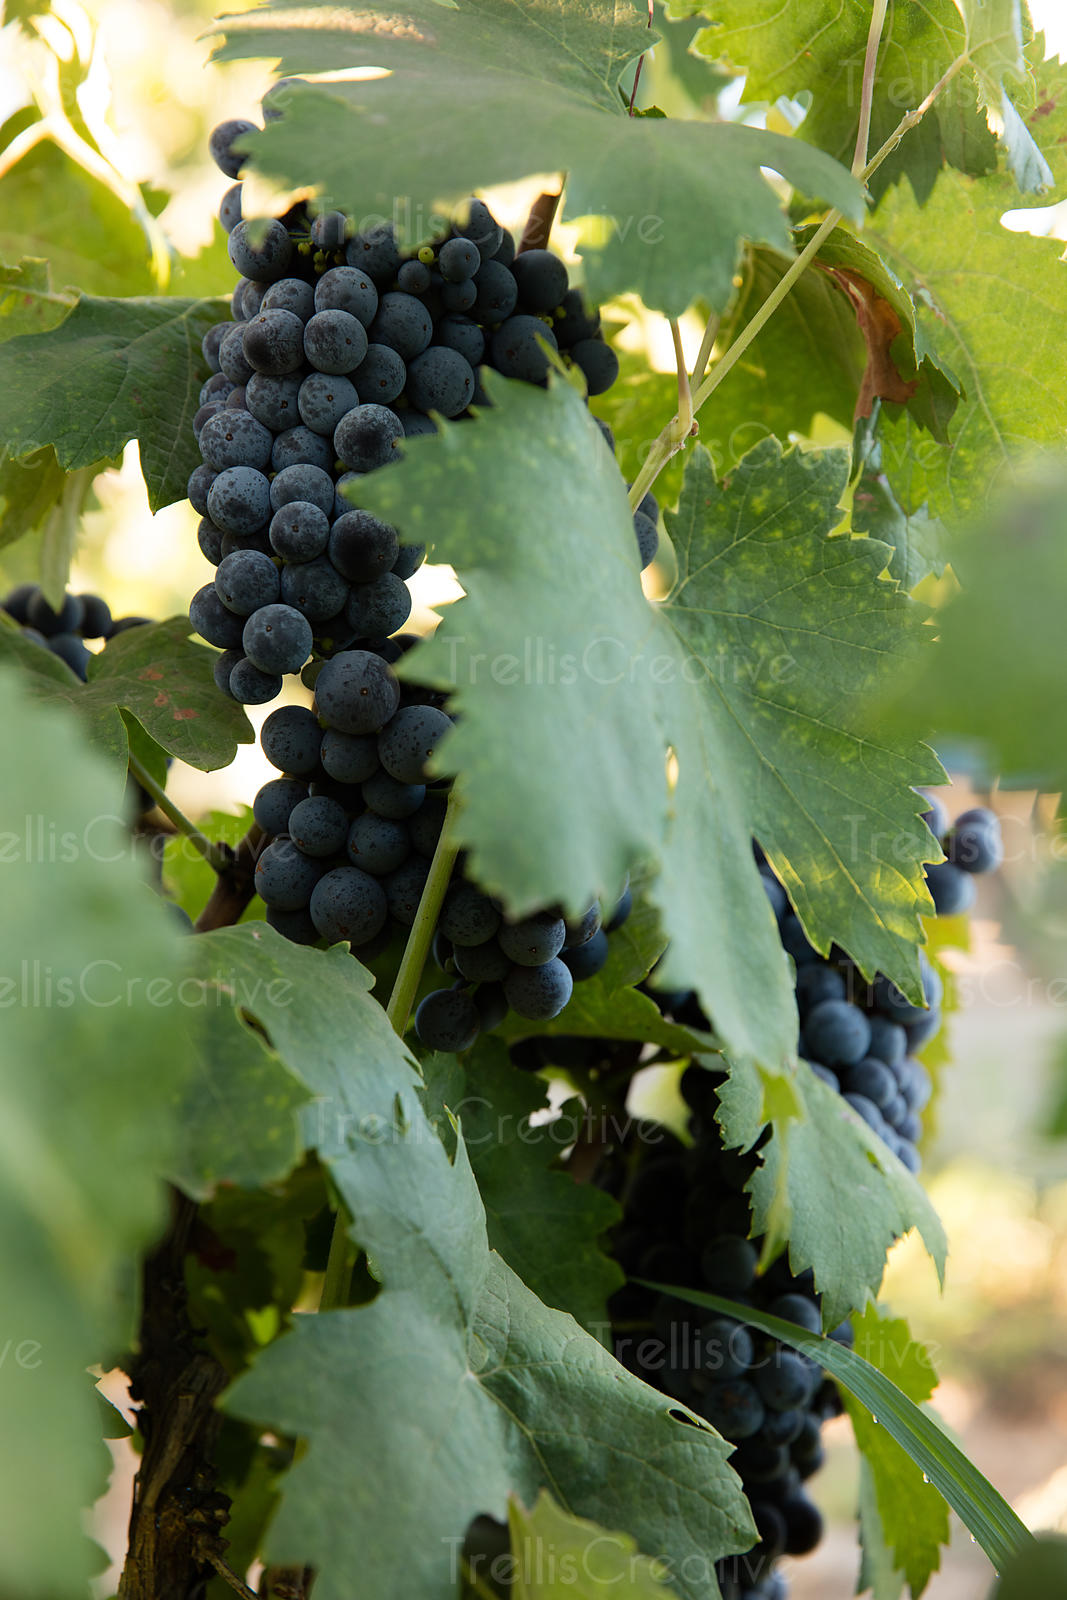 Ripe bunches of red grapes on vine